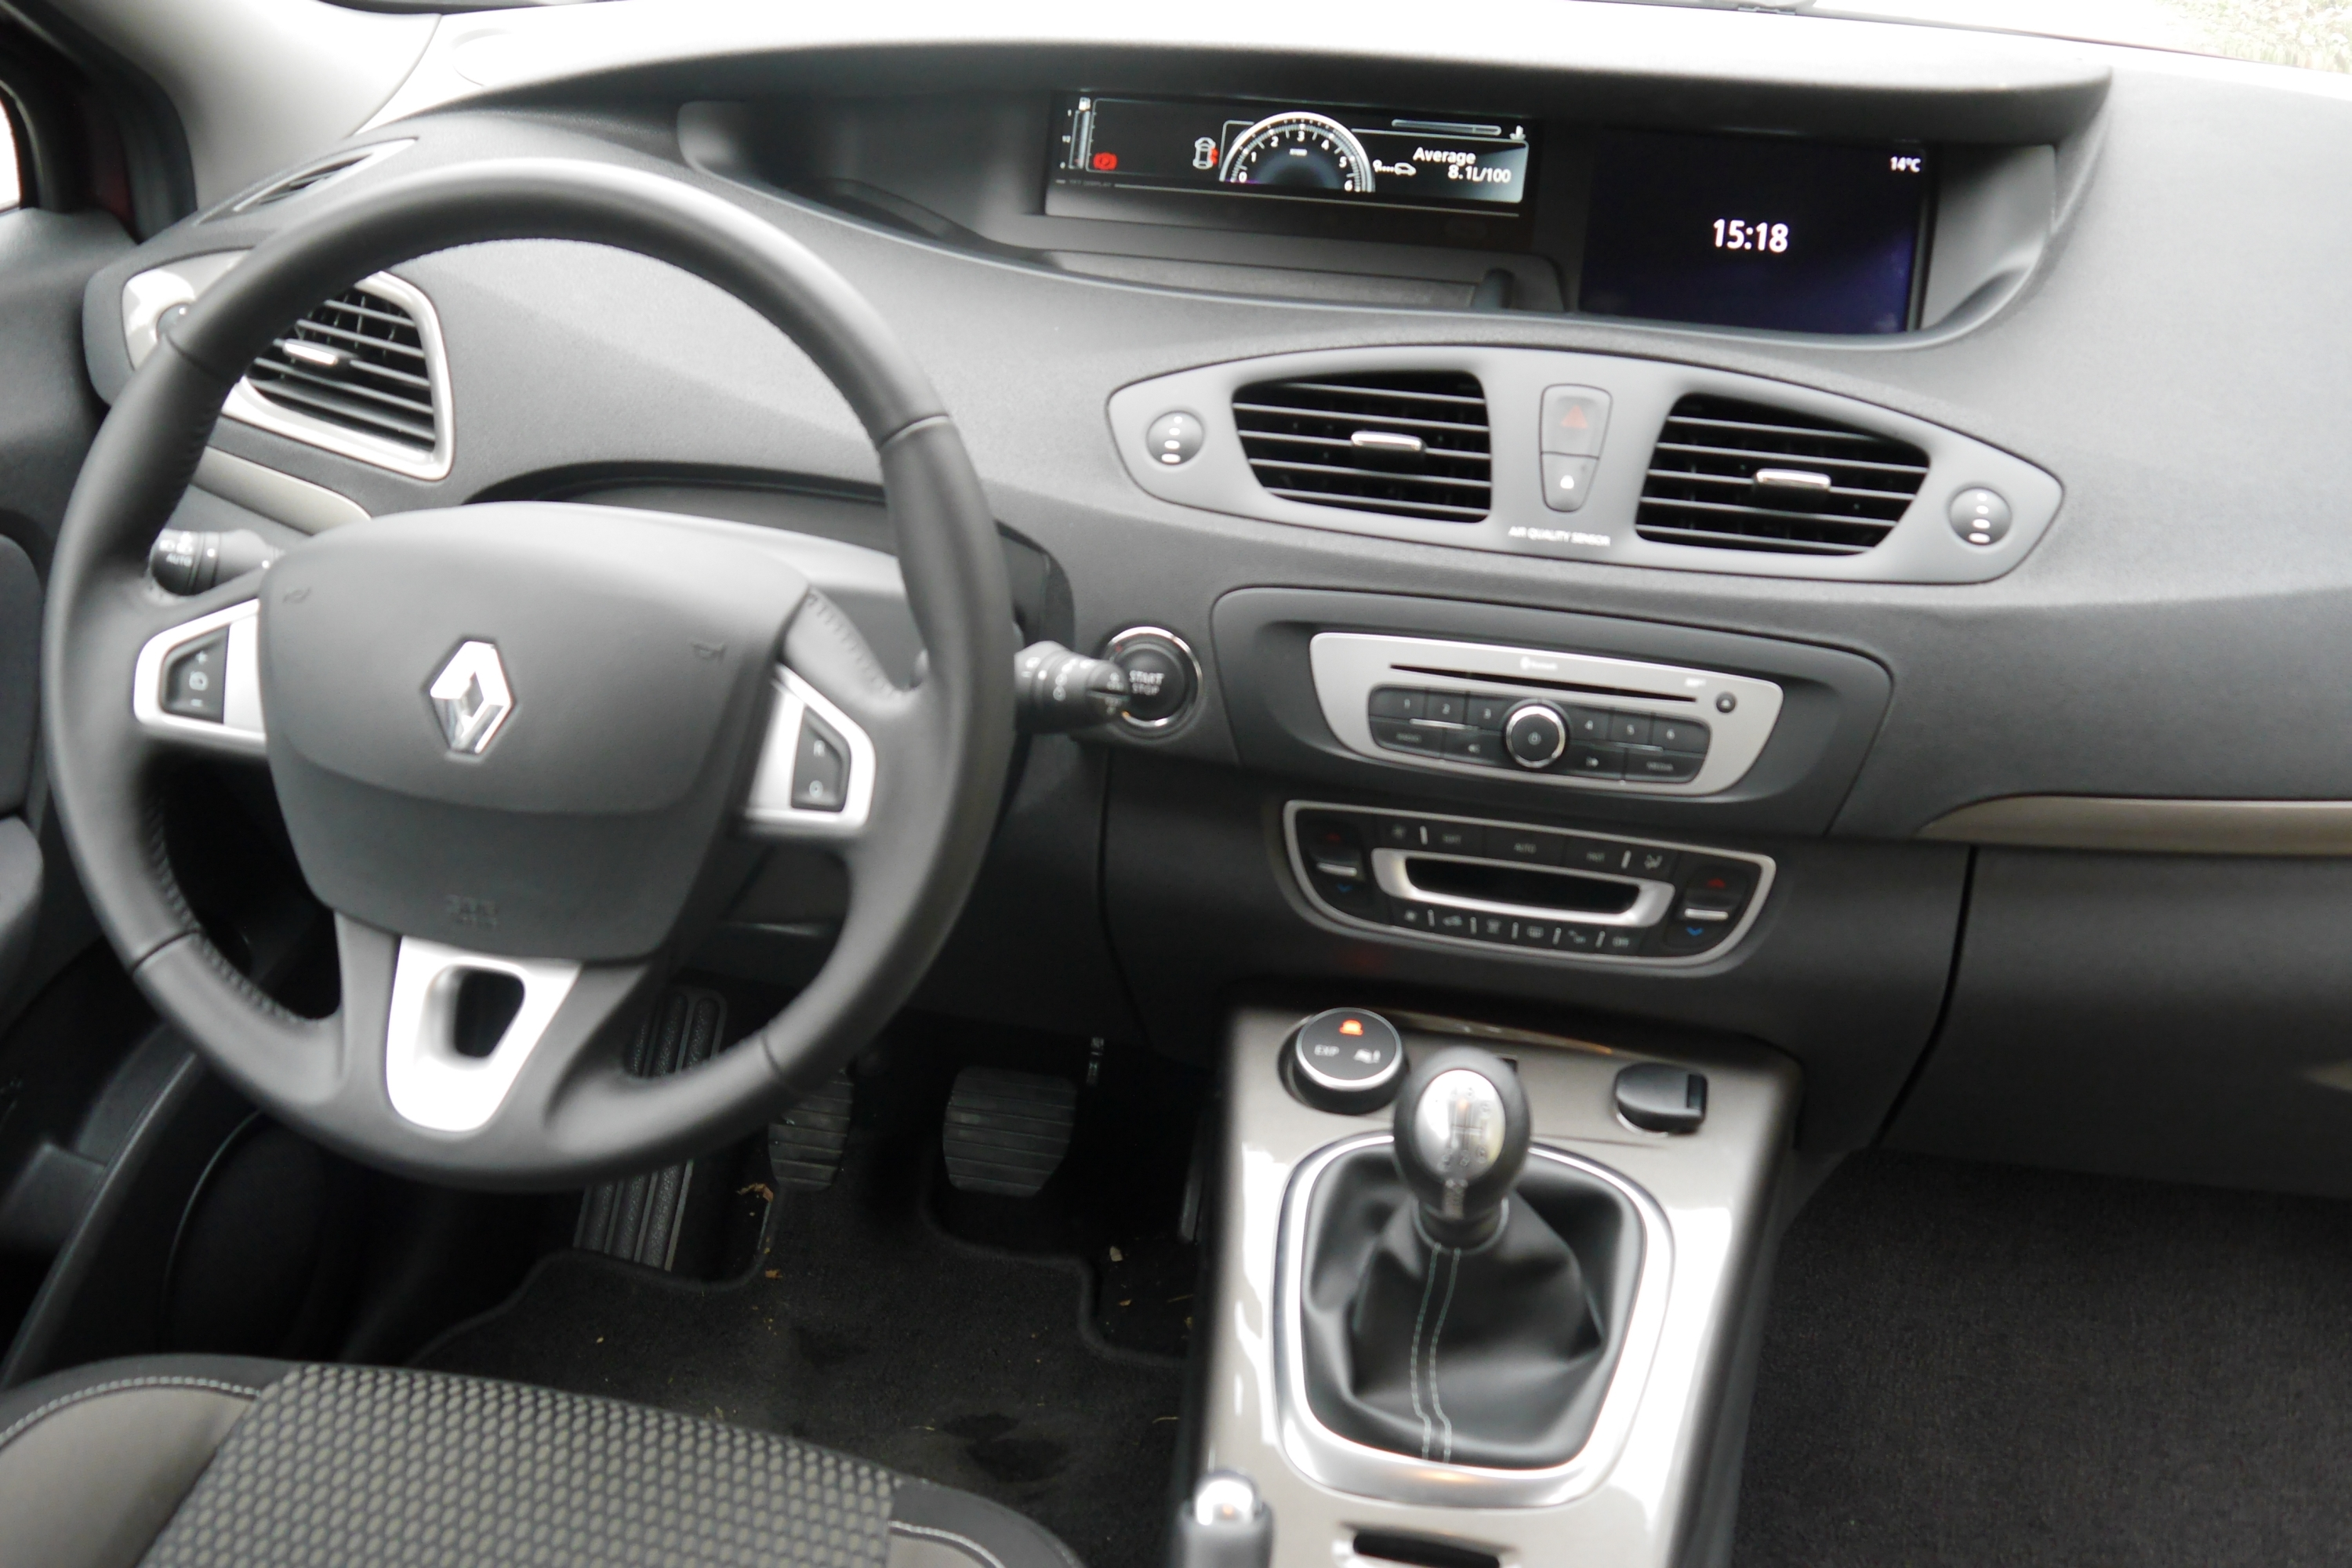 Renault Scenic XMod 1.5 dCi Expression TEST interijer (8)